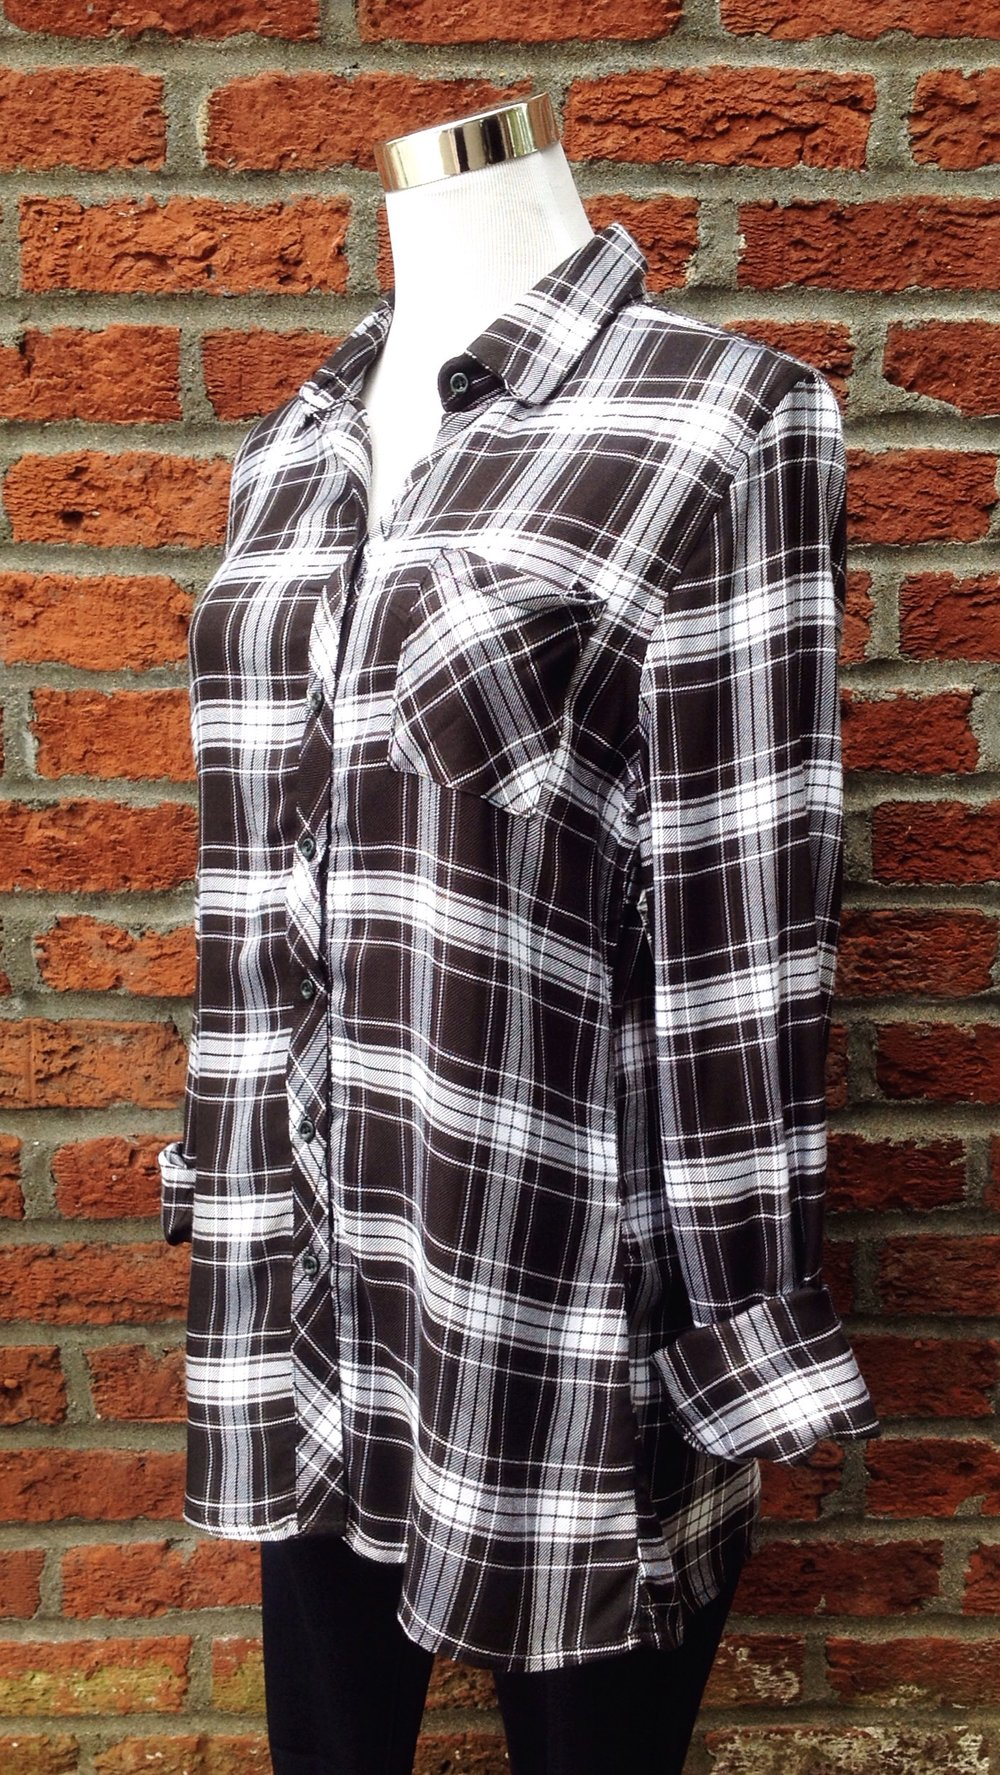 Black and white plaid shirt, $34